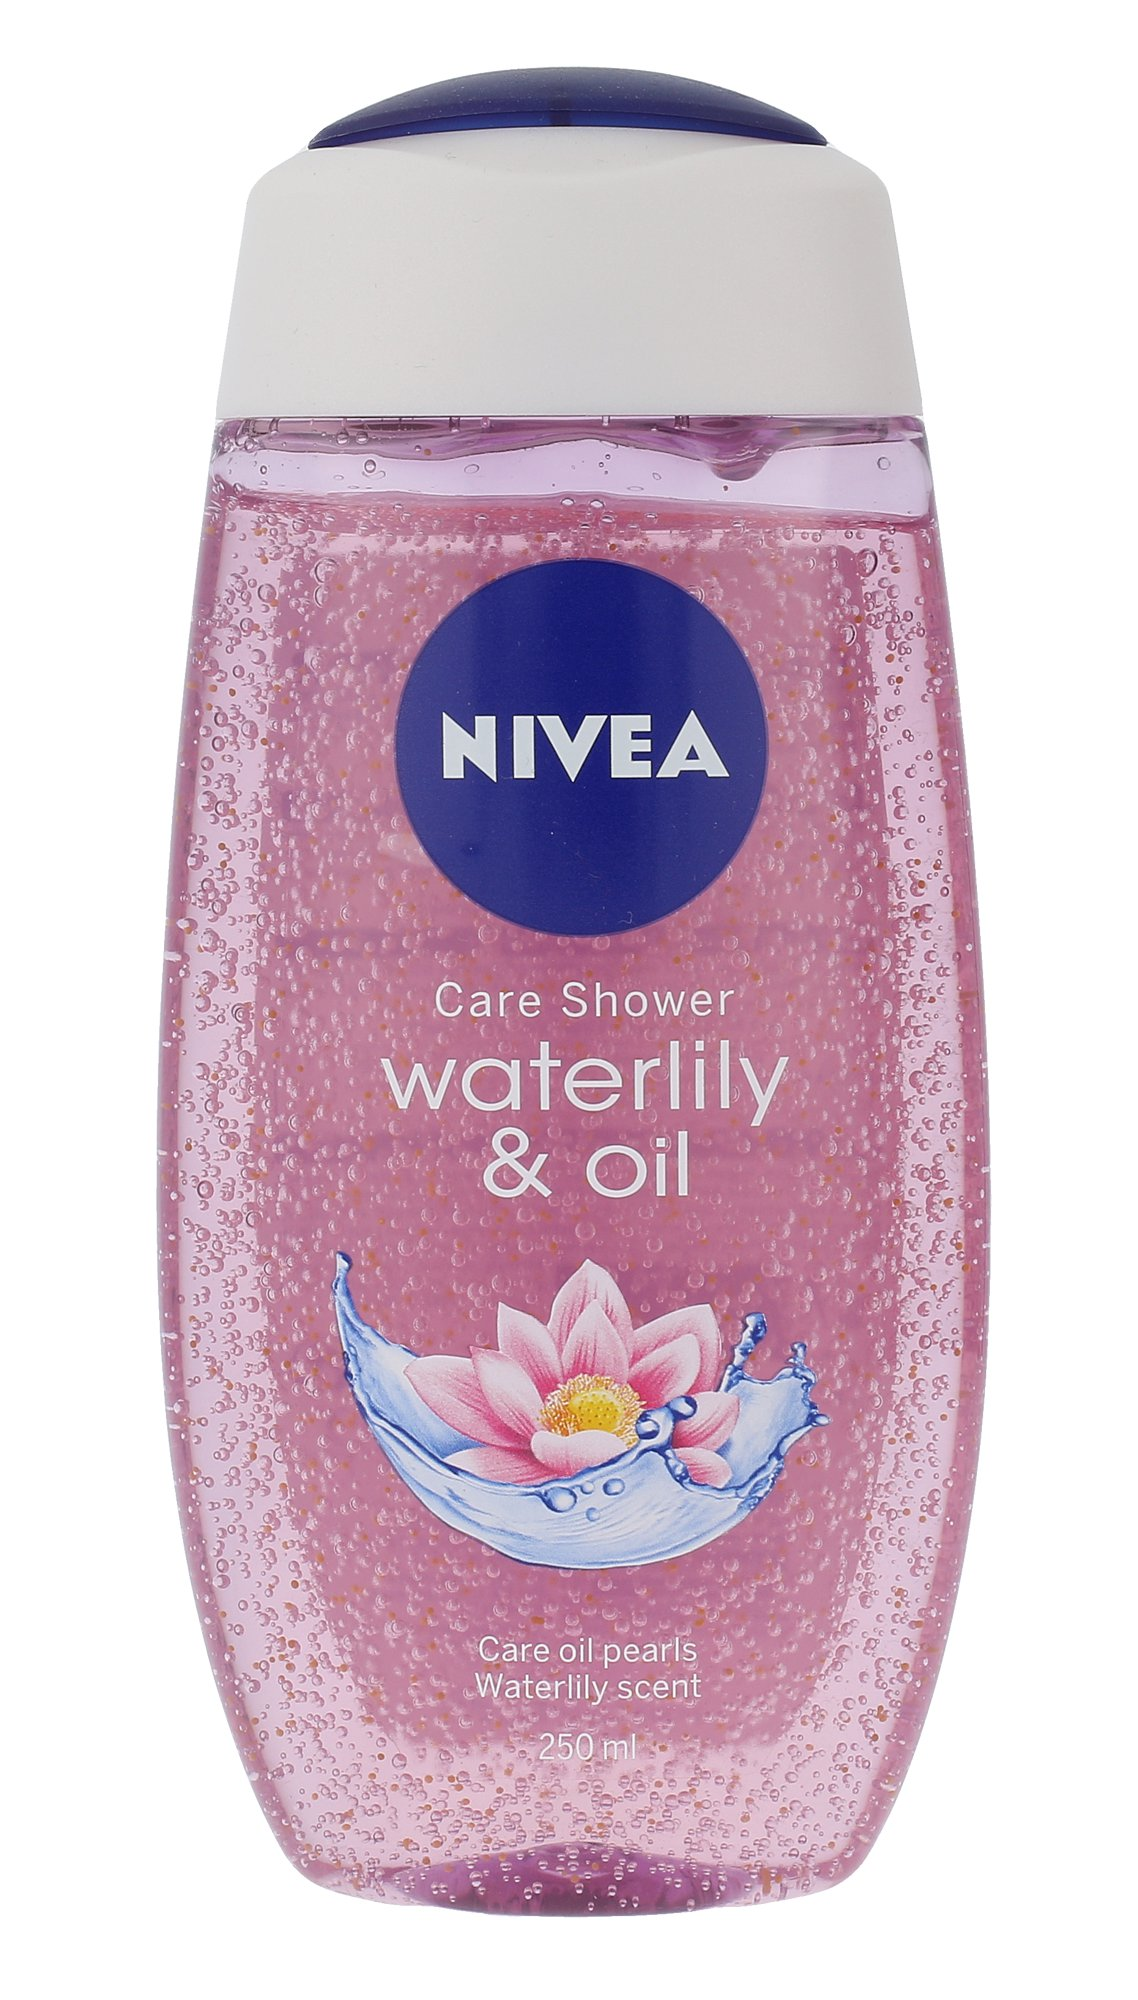 Nivea Waterlily & Oil, tusfürdő gél 250ml